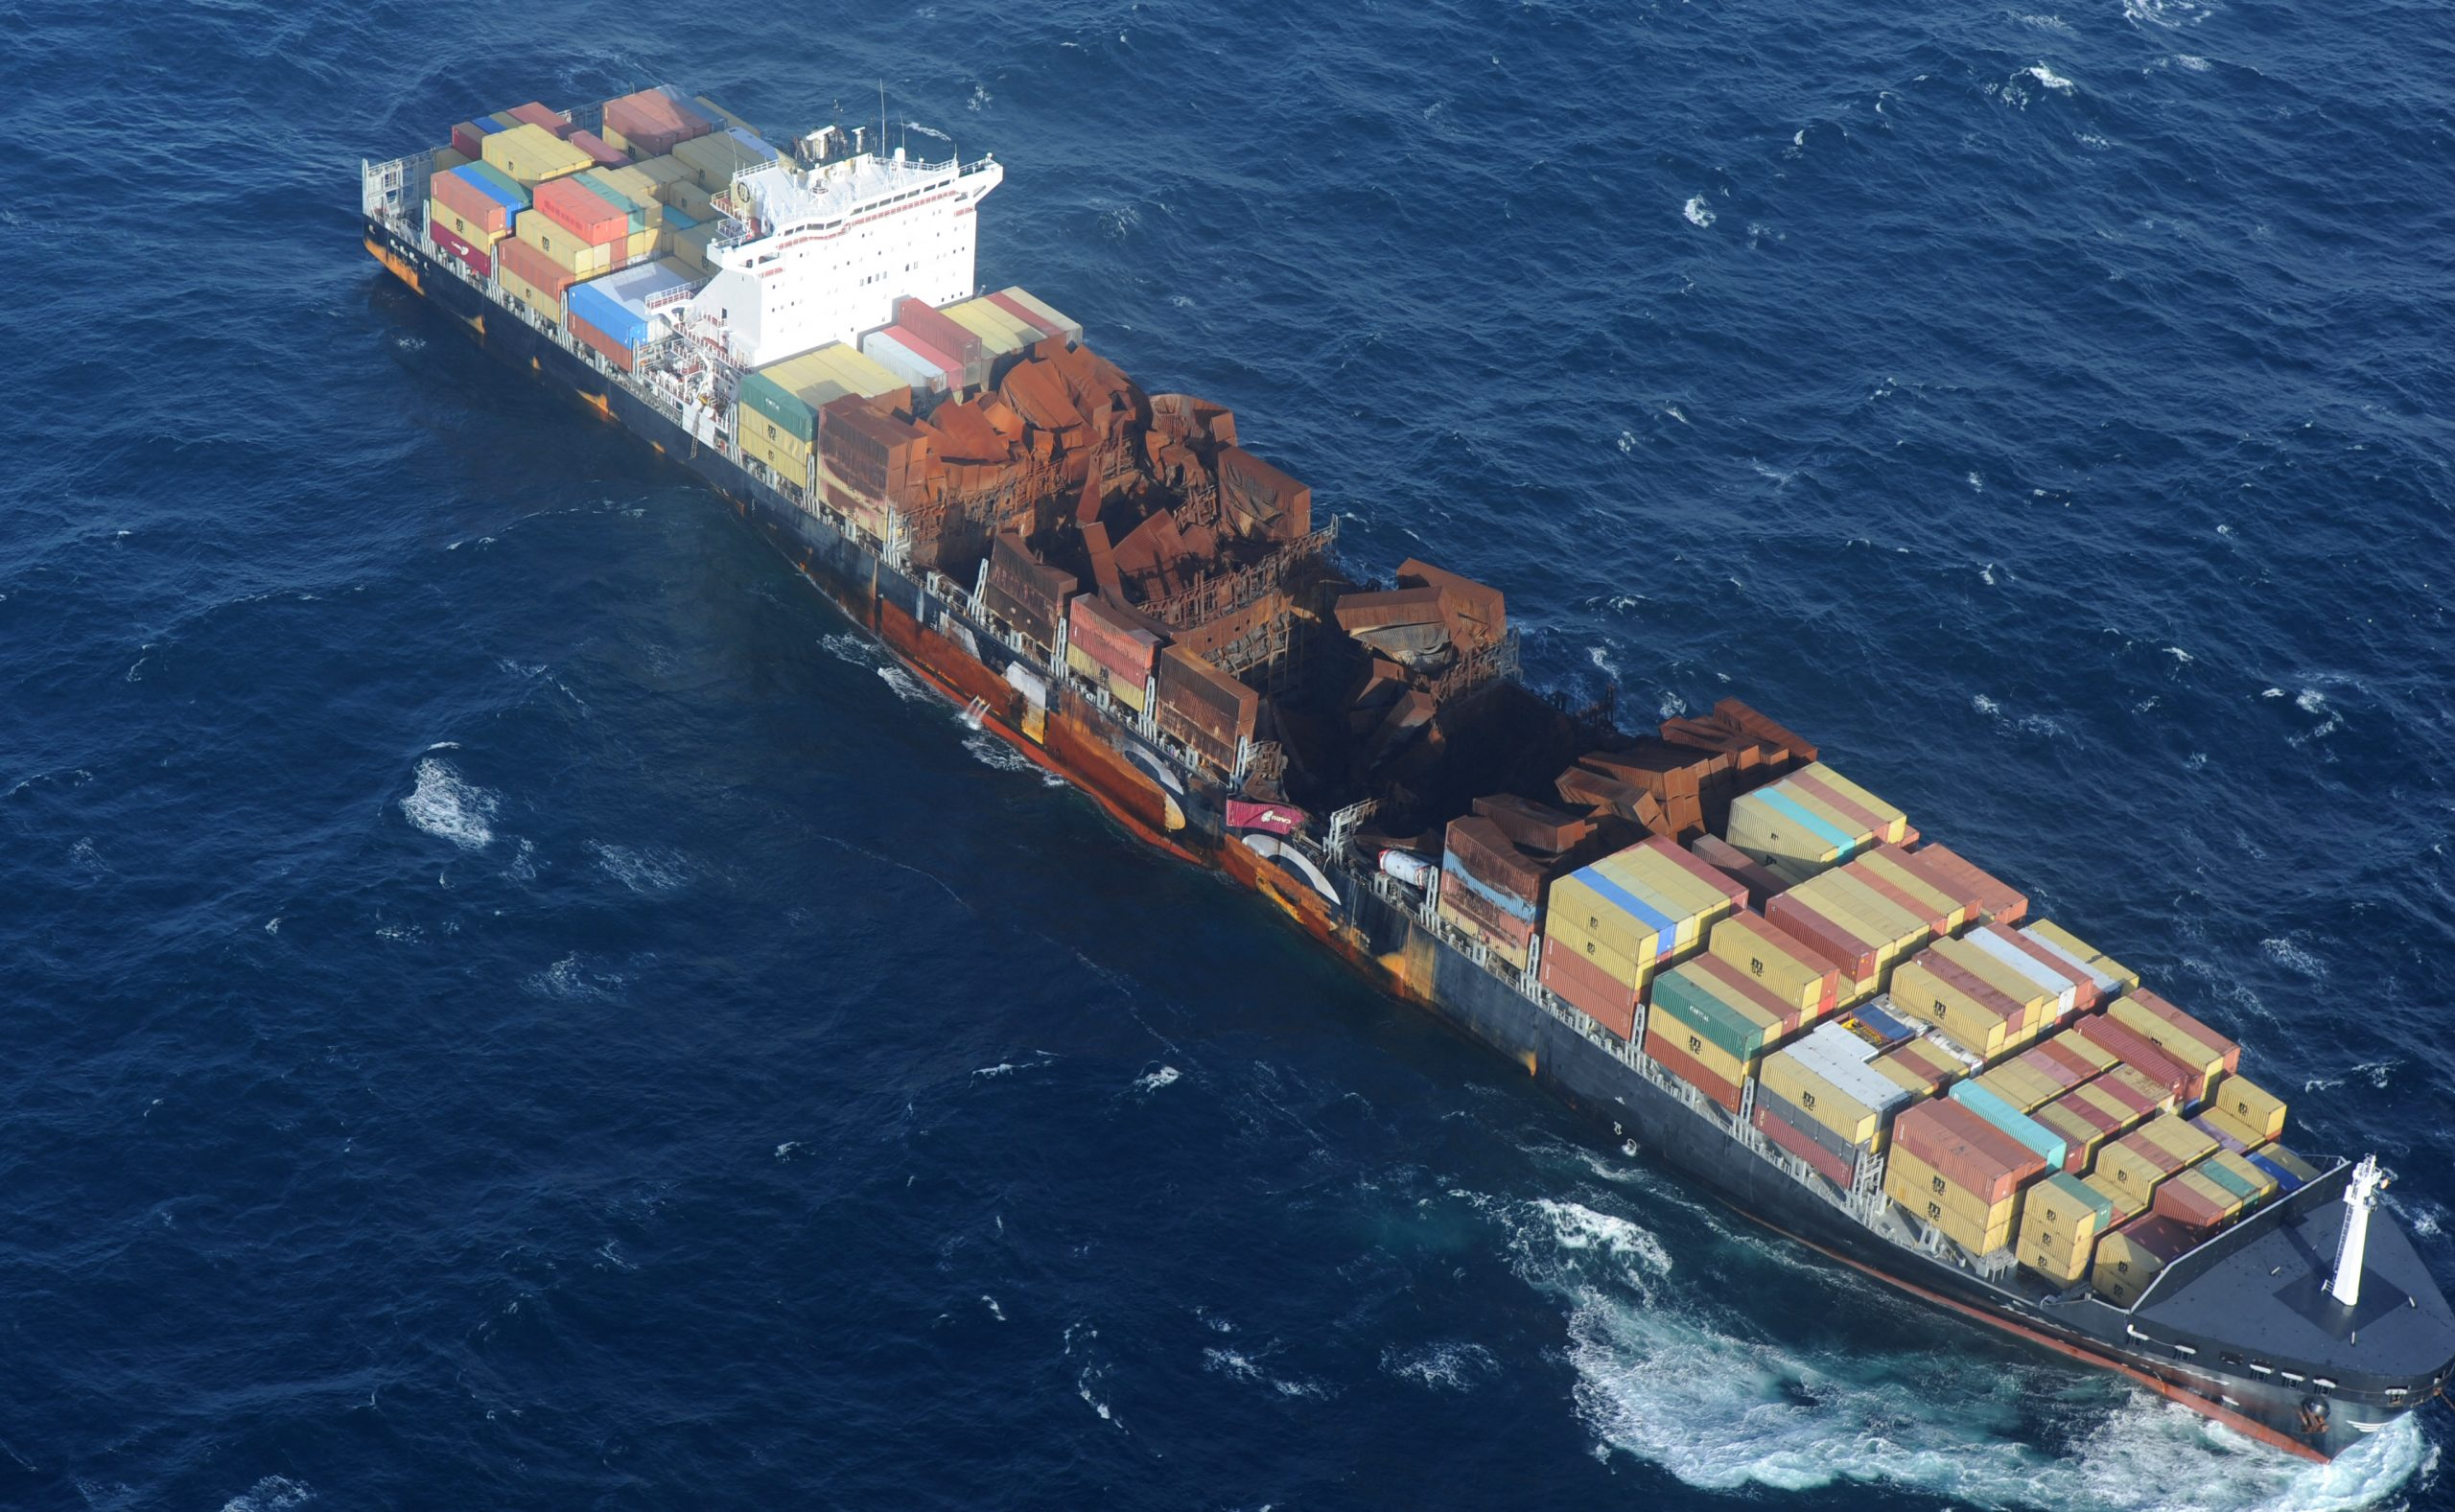 The MSC Flaminia was towed by Smit to Germany (ANP / AFP Photo)